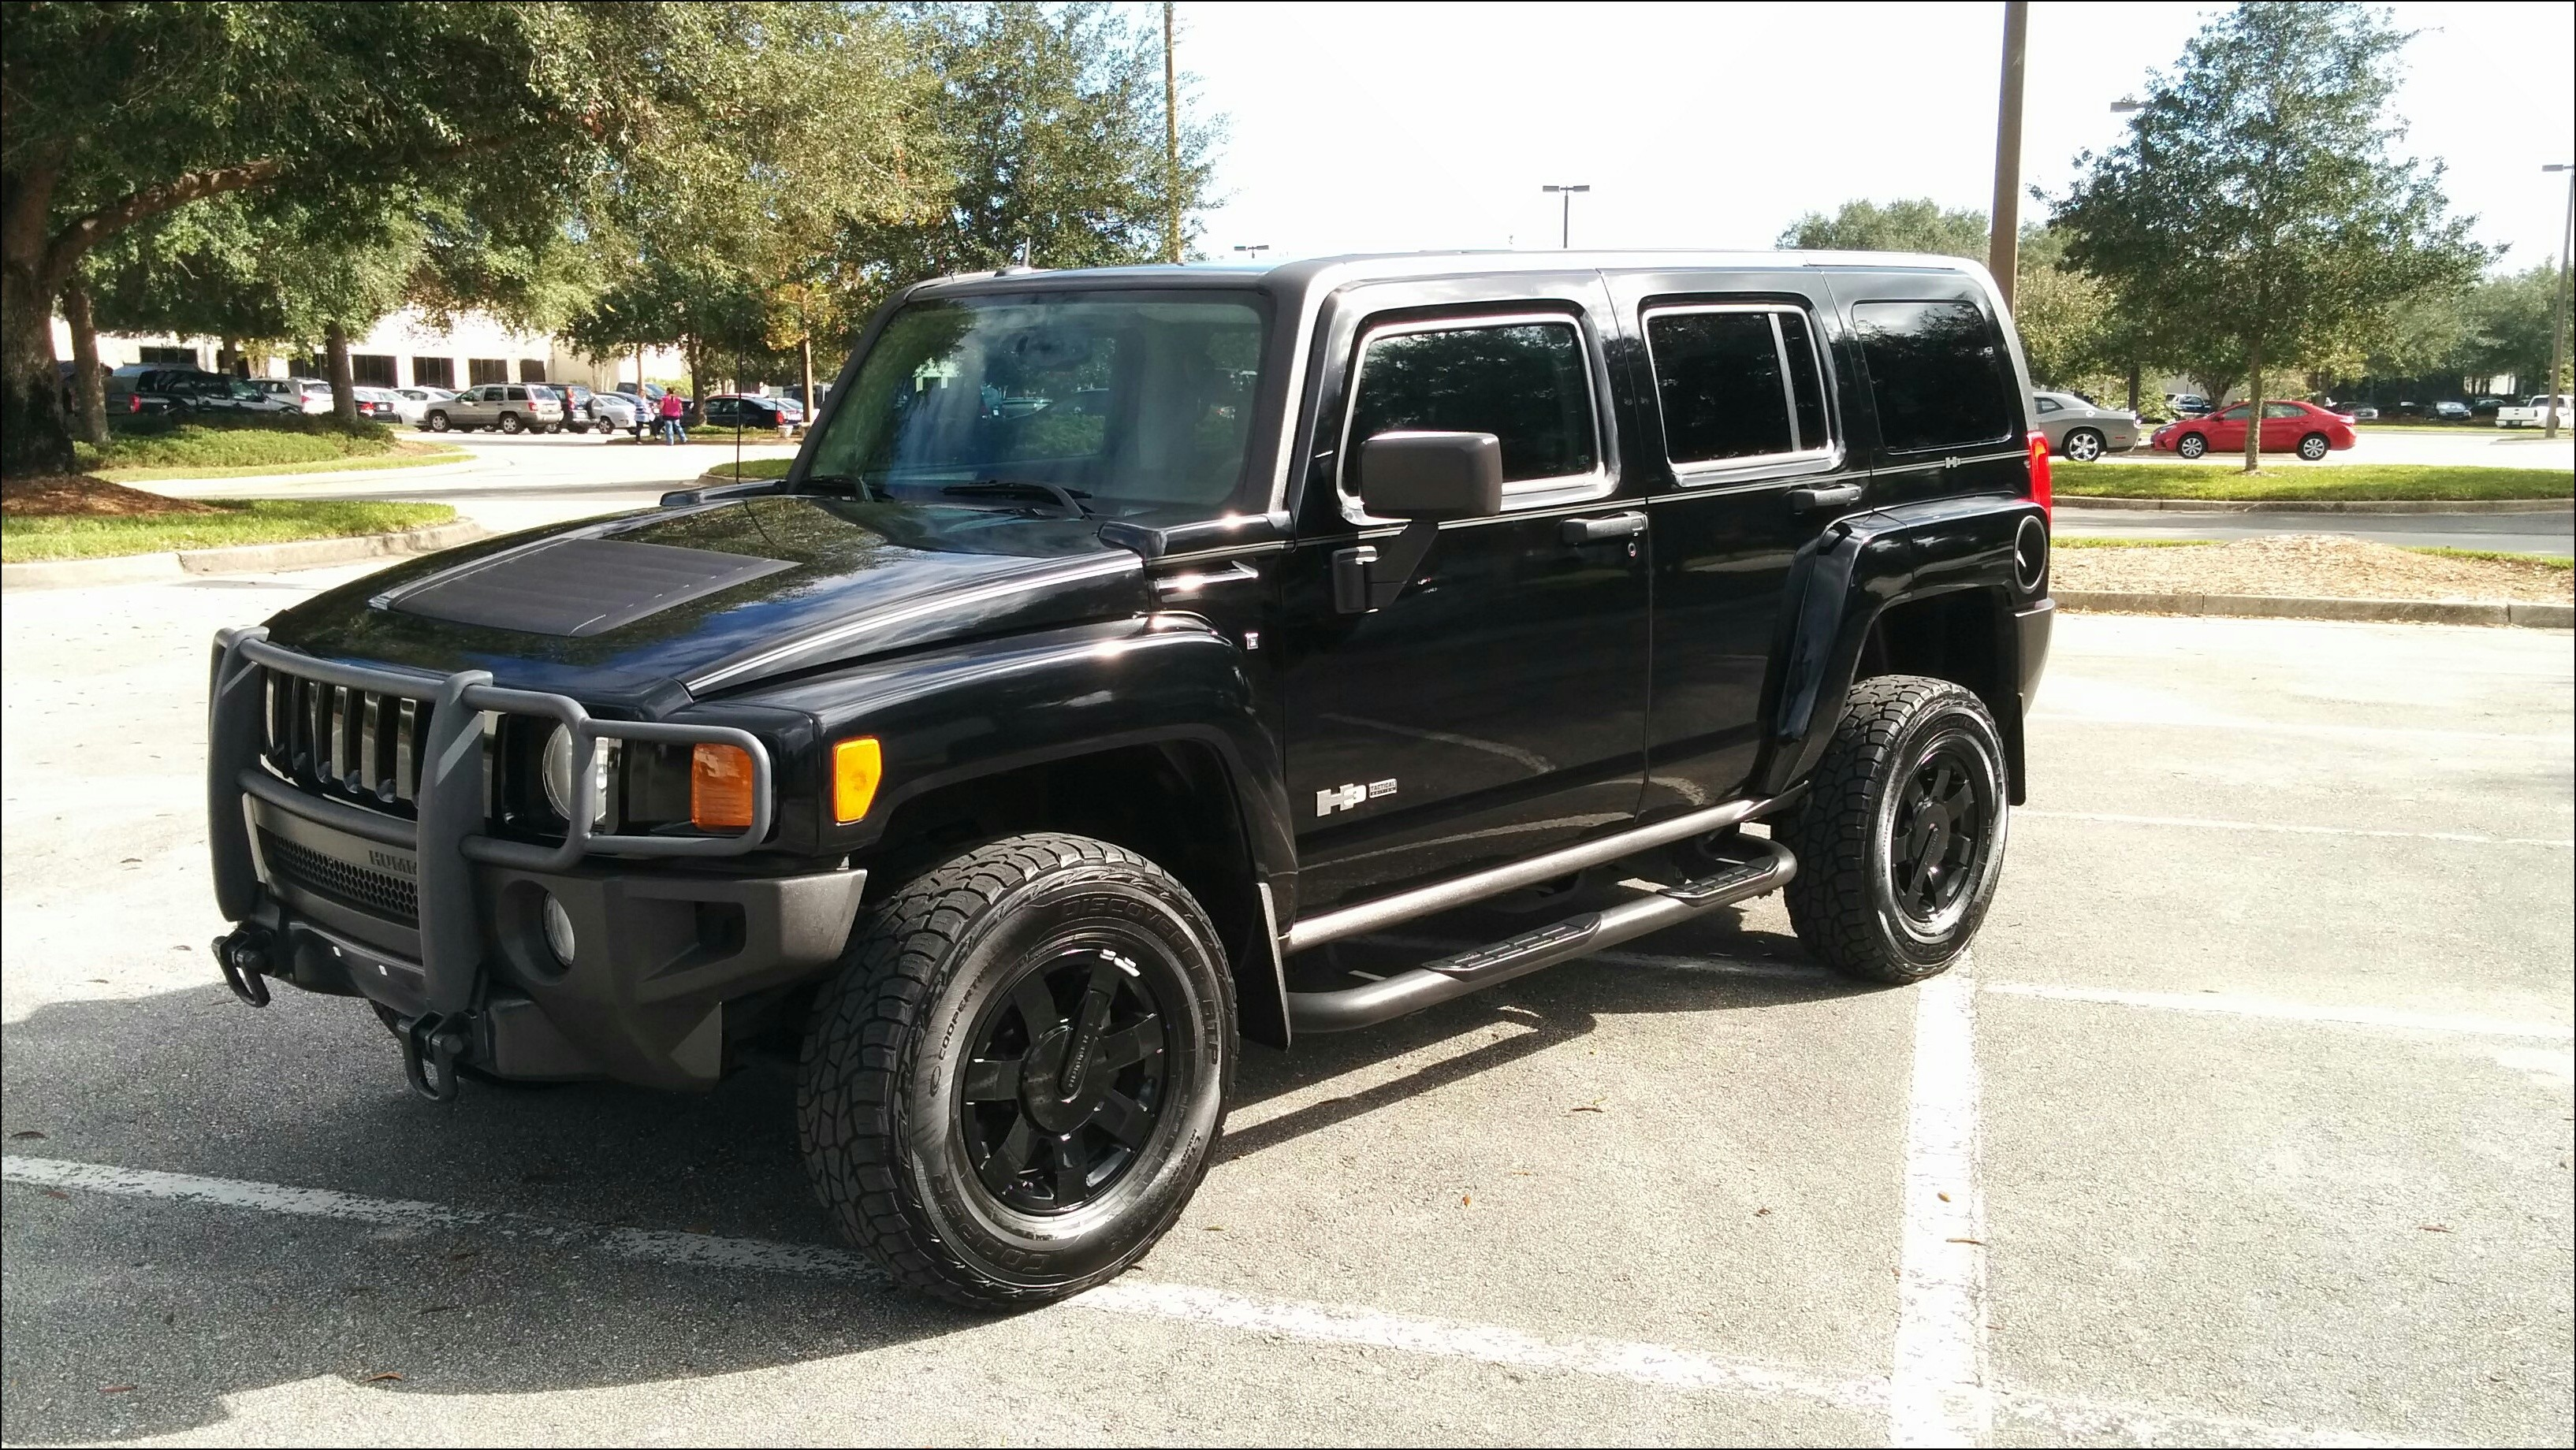 Res: 3268x1840, Black Hummer H3 Tactical Edition For Sale